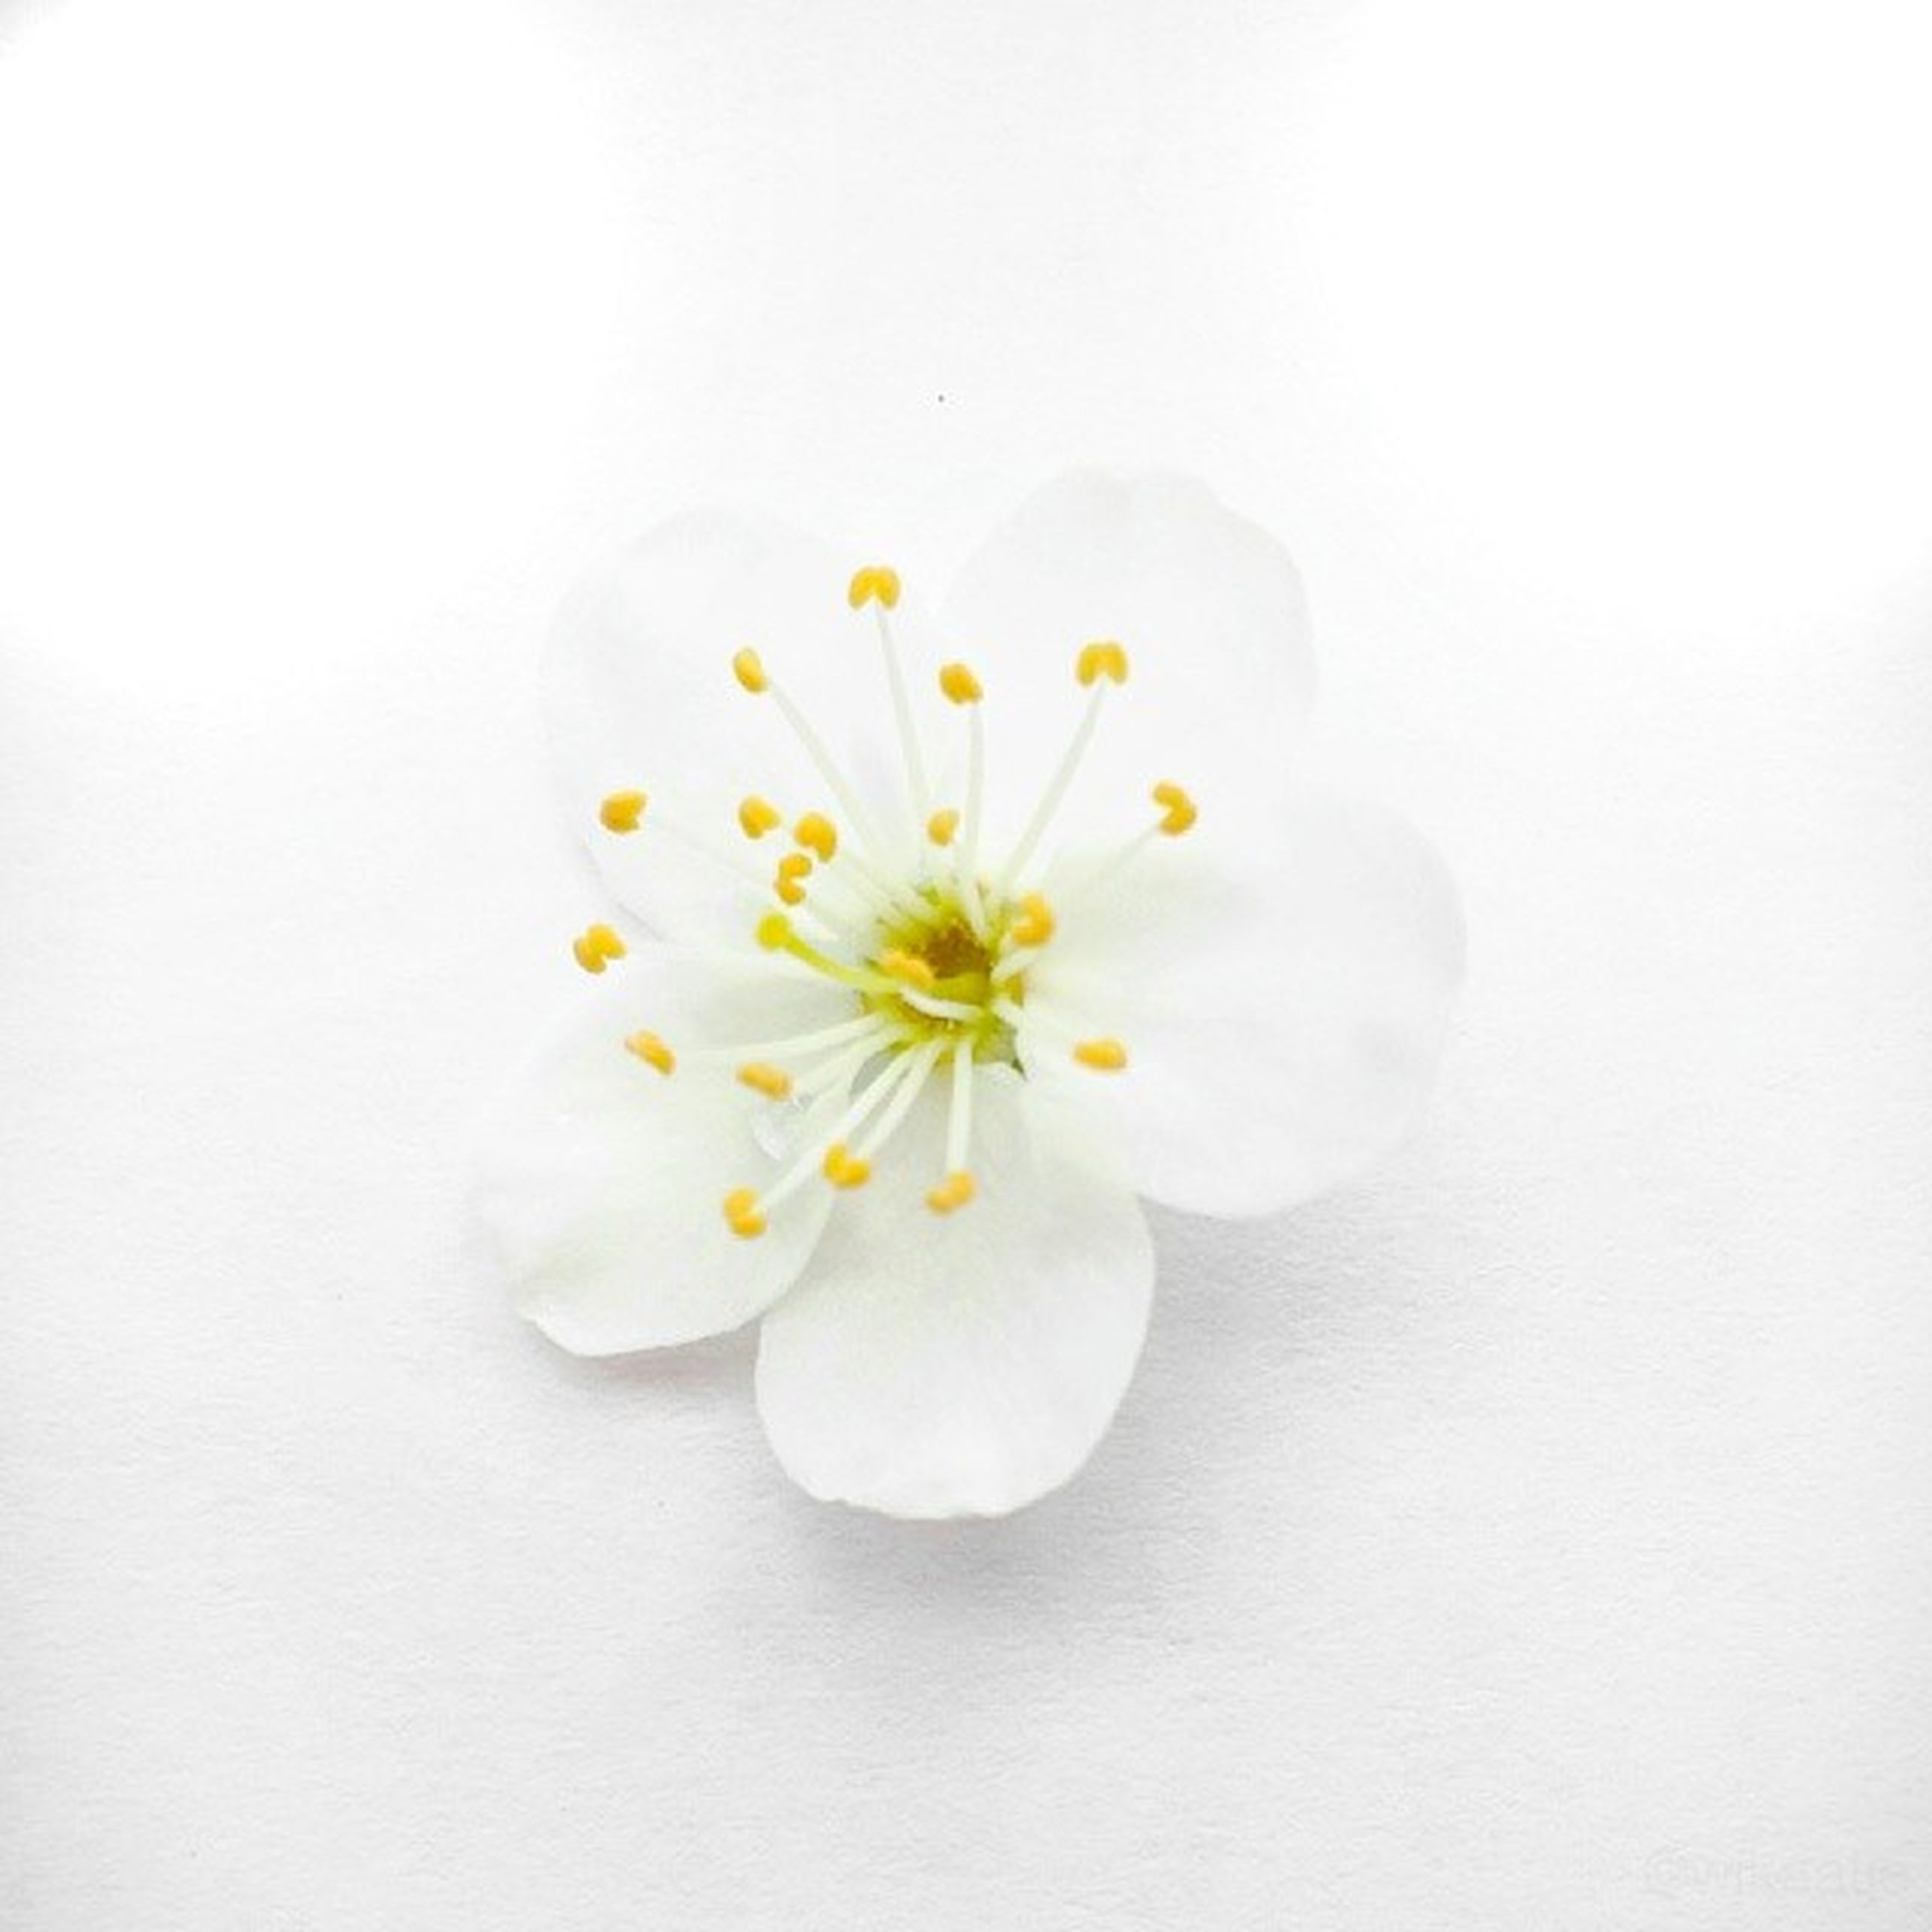 flower, white color, freshness, studio shot, white background, petal, fragility, flower head, copy space, close-up, white, indoors, beauty in nature, high angle view, still life, nature, pollen, no people, directly above, single flower